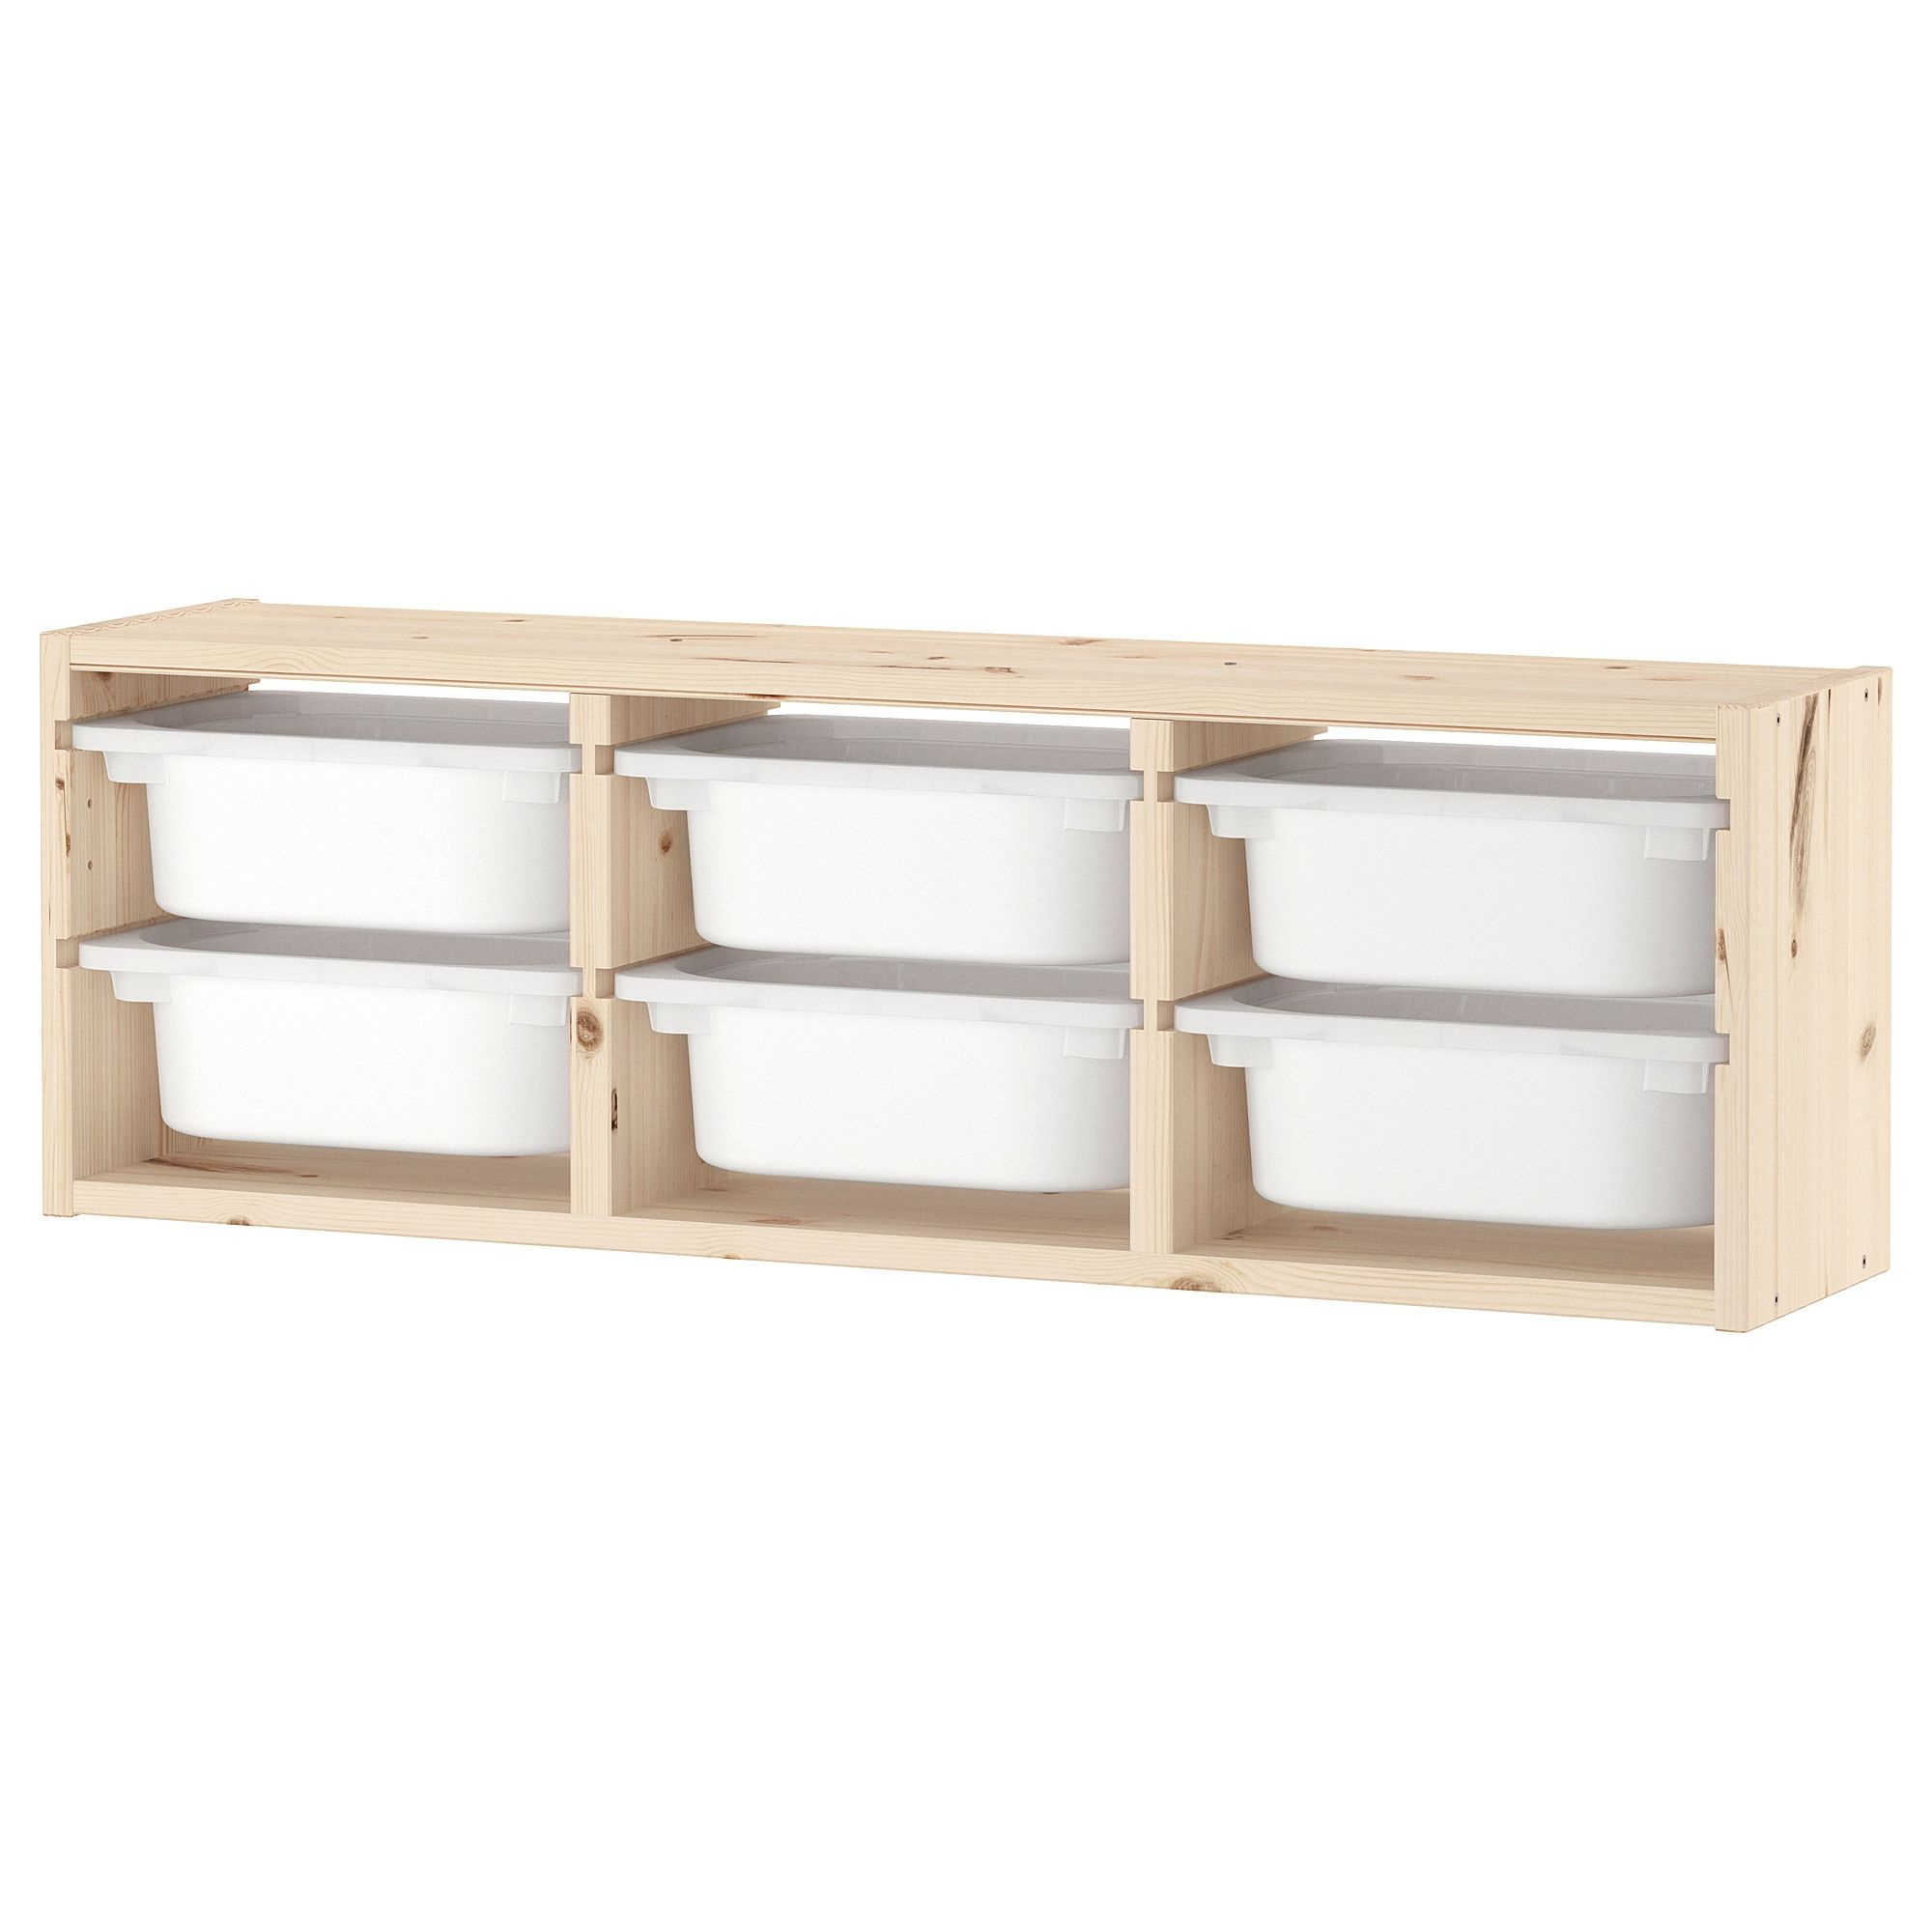 Ikea Trofast Pine Light White Stained Pine White Wall Storage In